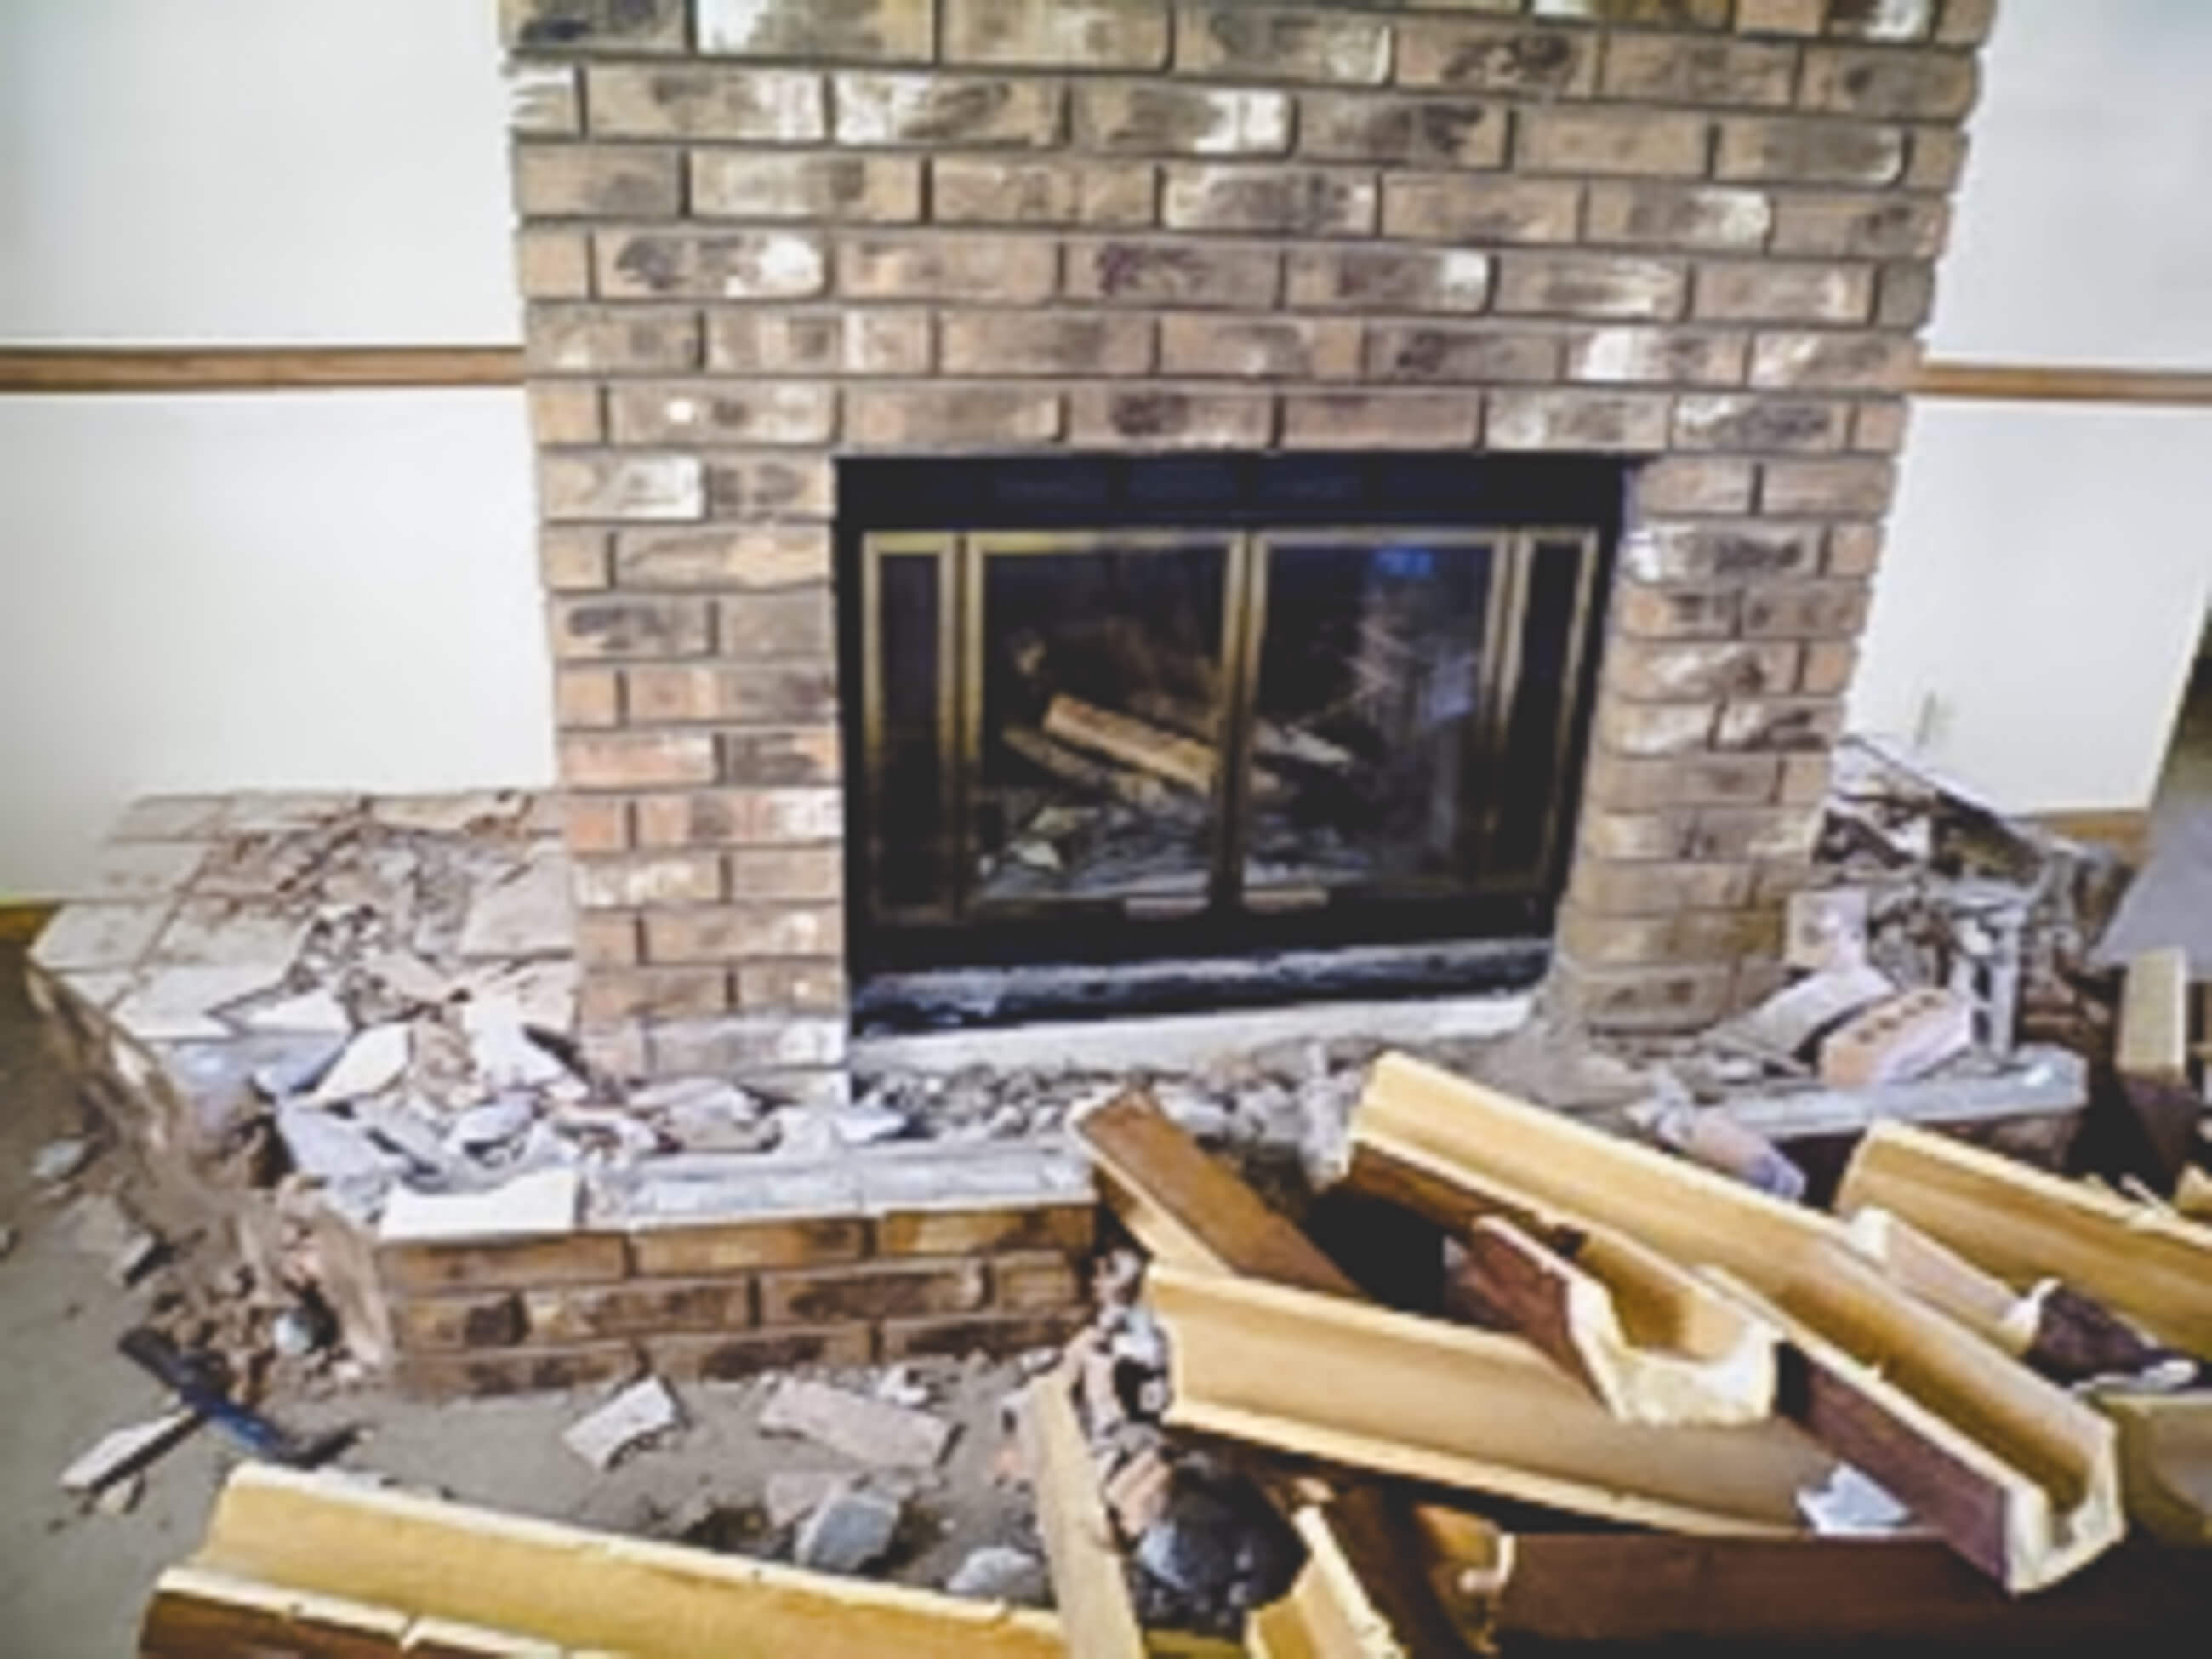 Removing seat around fireplace